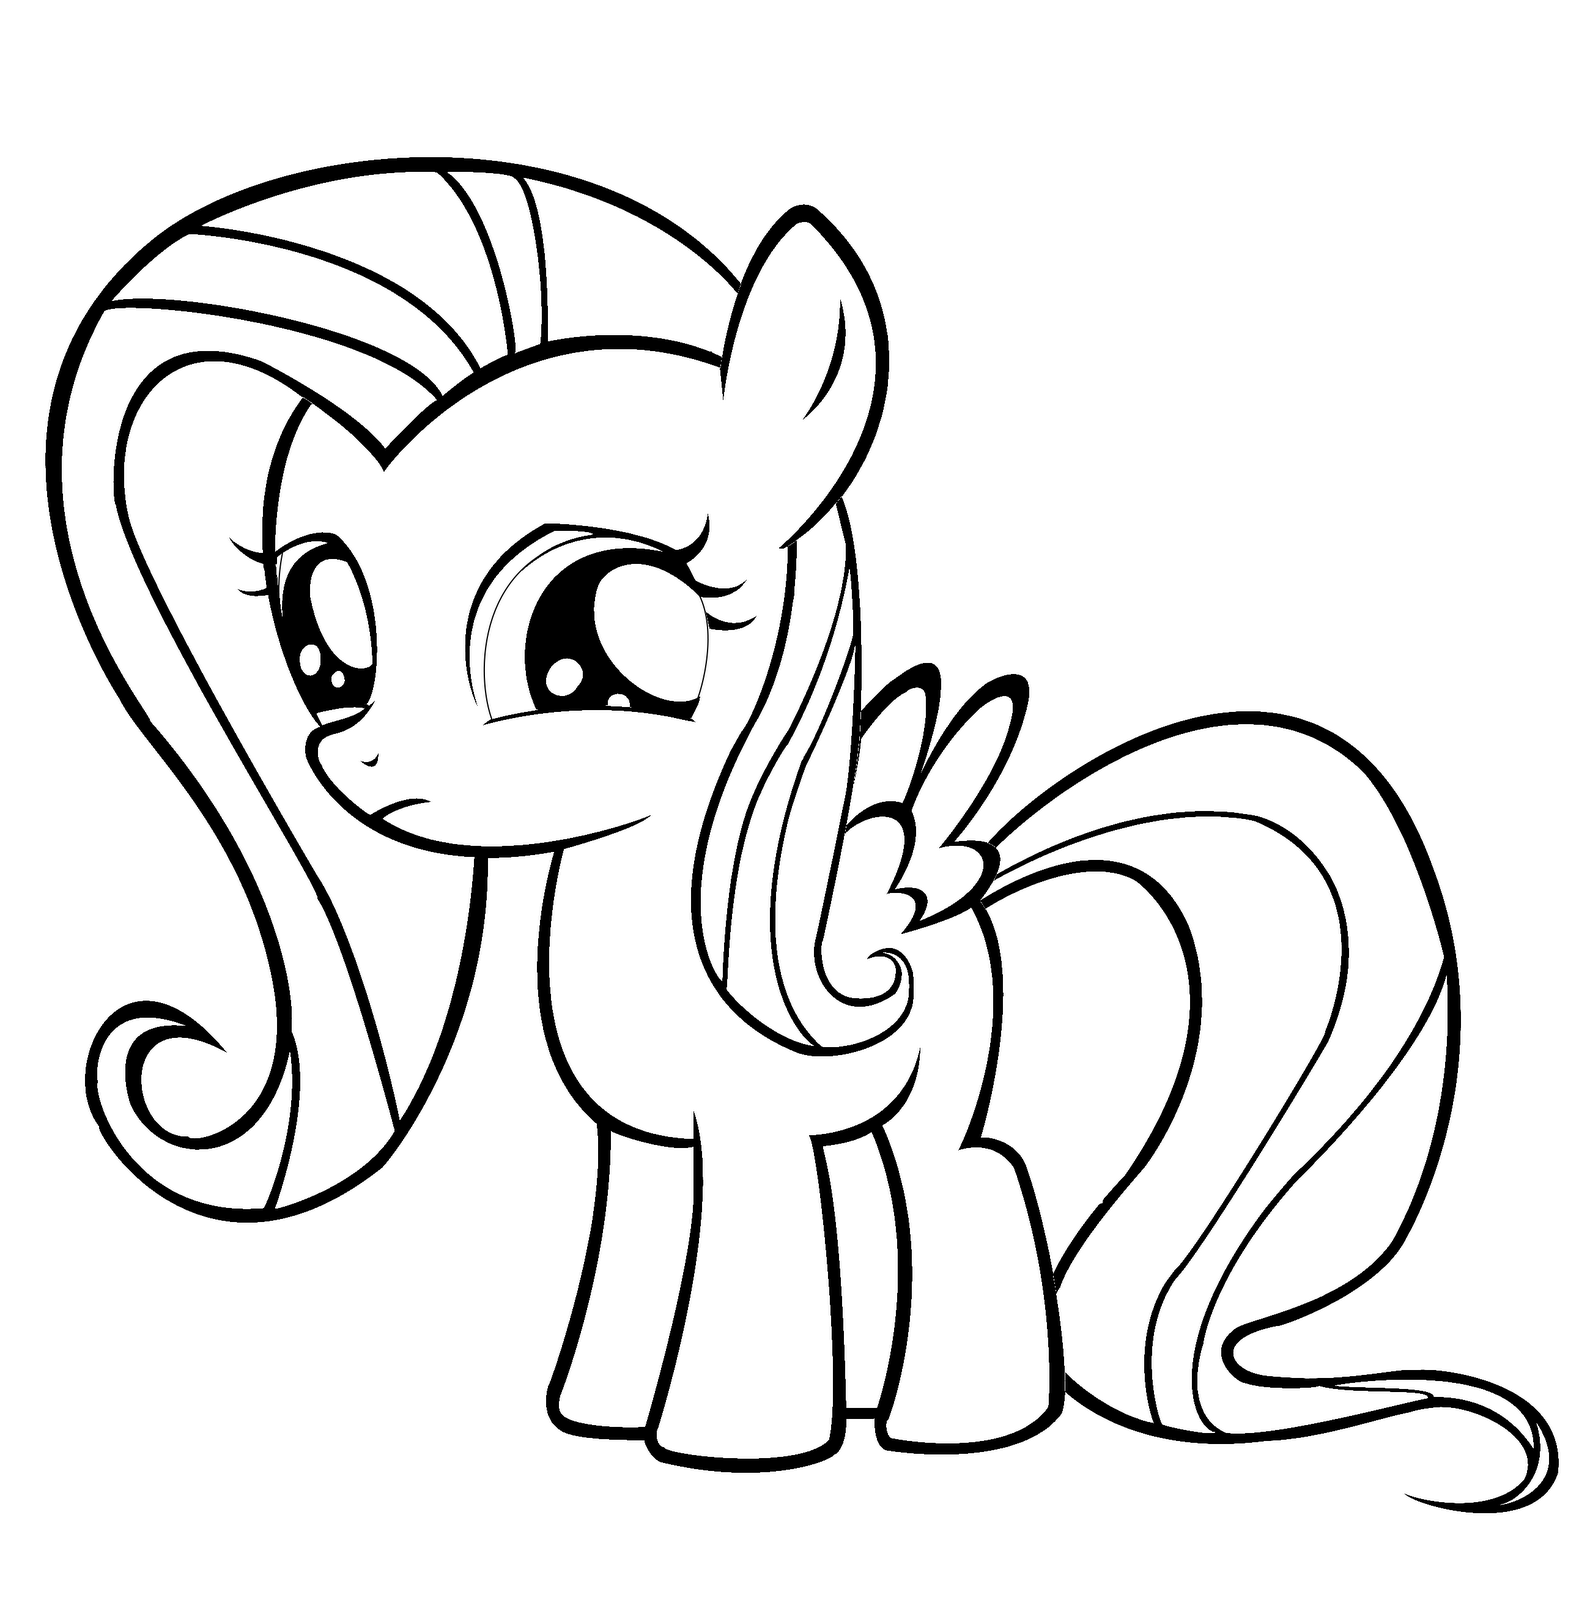 Fluttershy Coloring Pages Best Coloring Pages For Kids Free Colouring Page